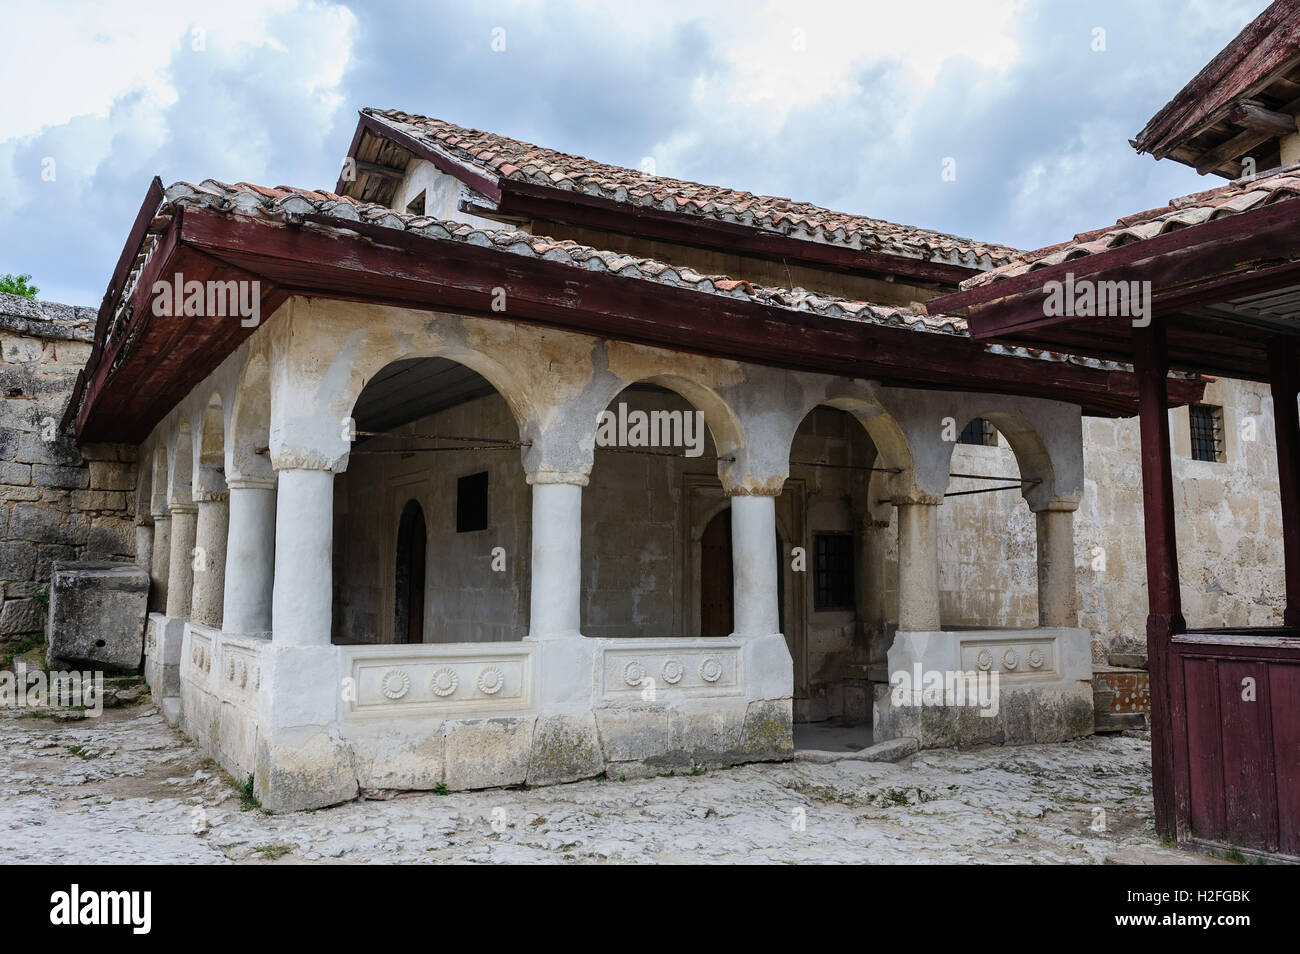 Karaite prayer house in Chufut-Kale, Crimea - Stock Image